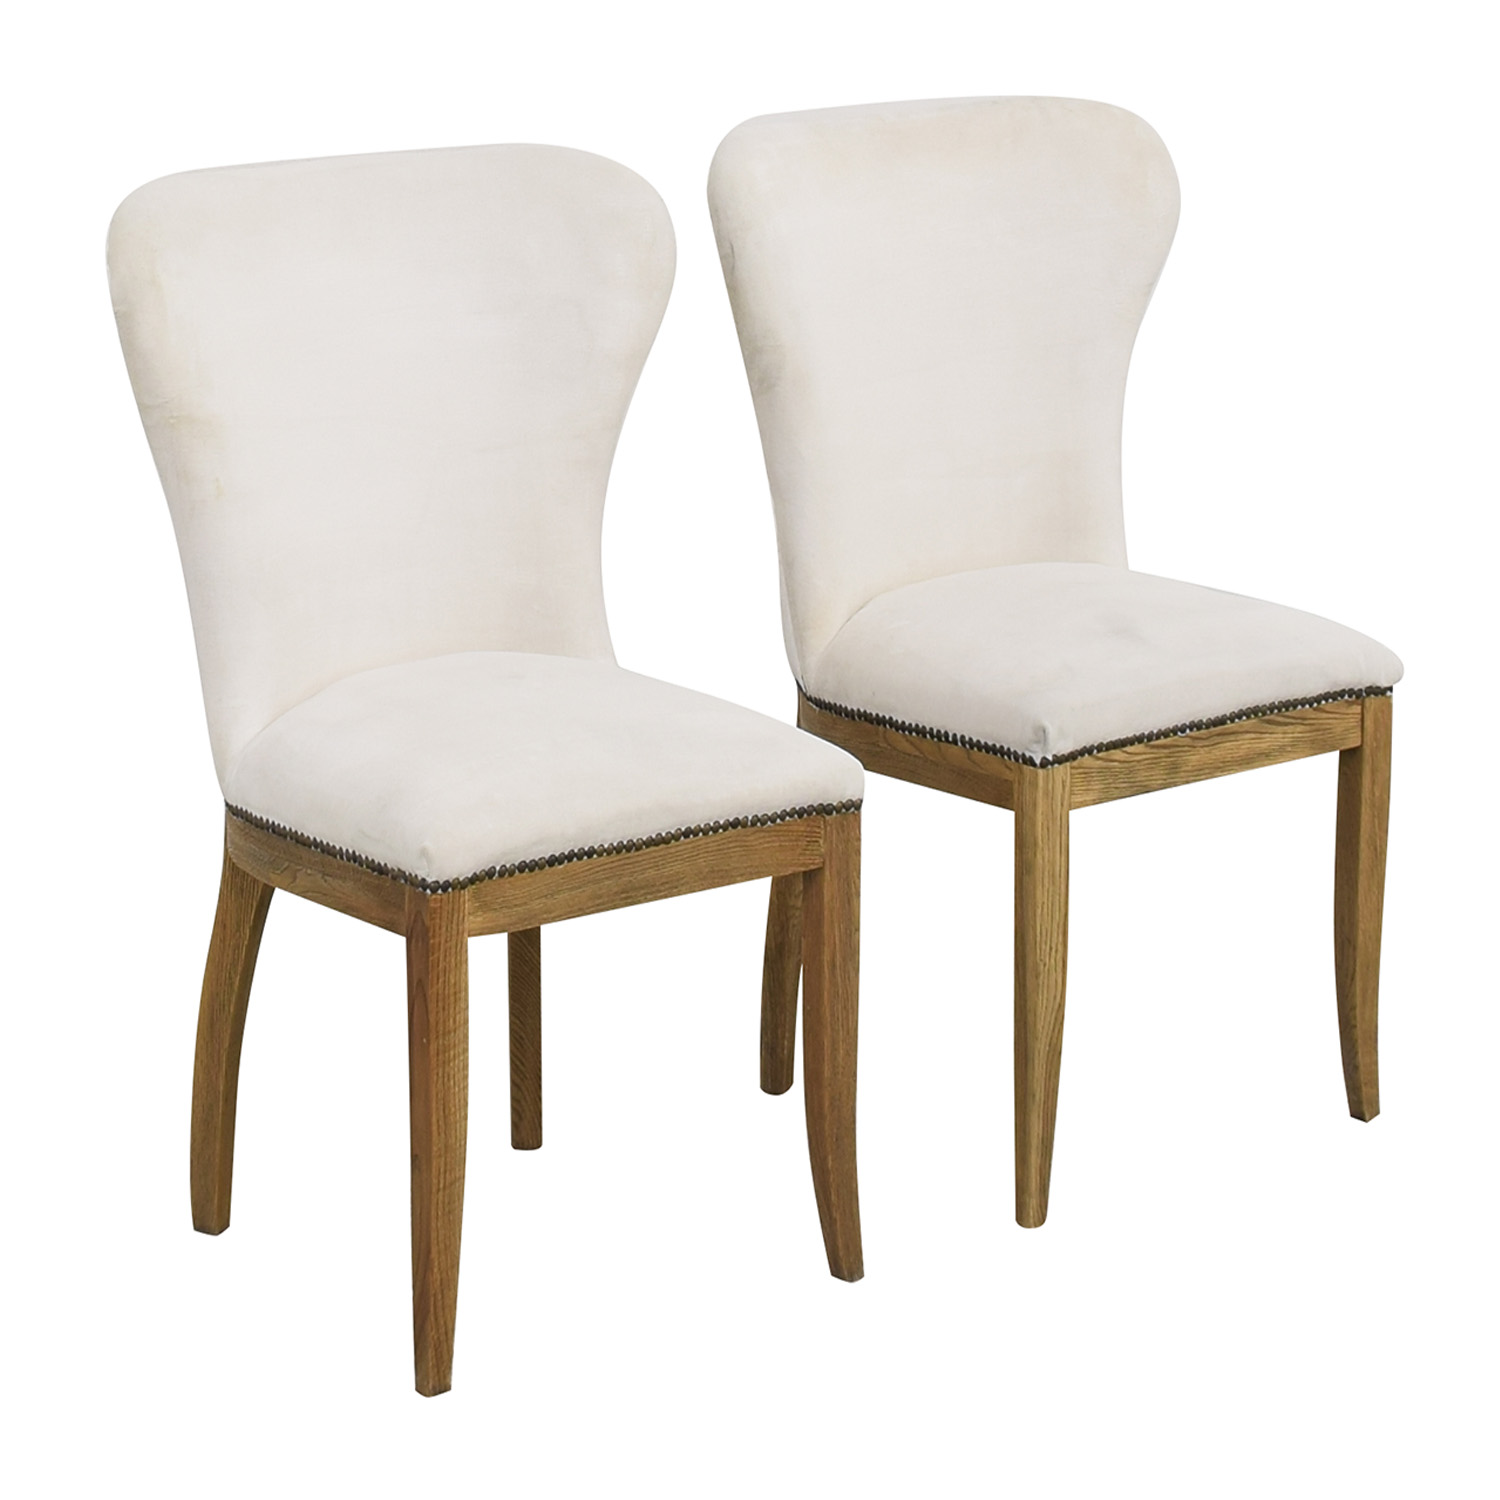 shop Restoration Hardware Restoration Hardware Upholstered Dining Chairs online